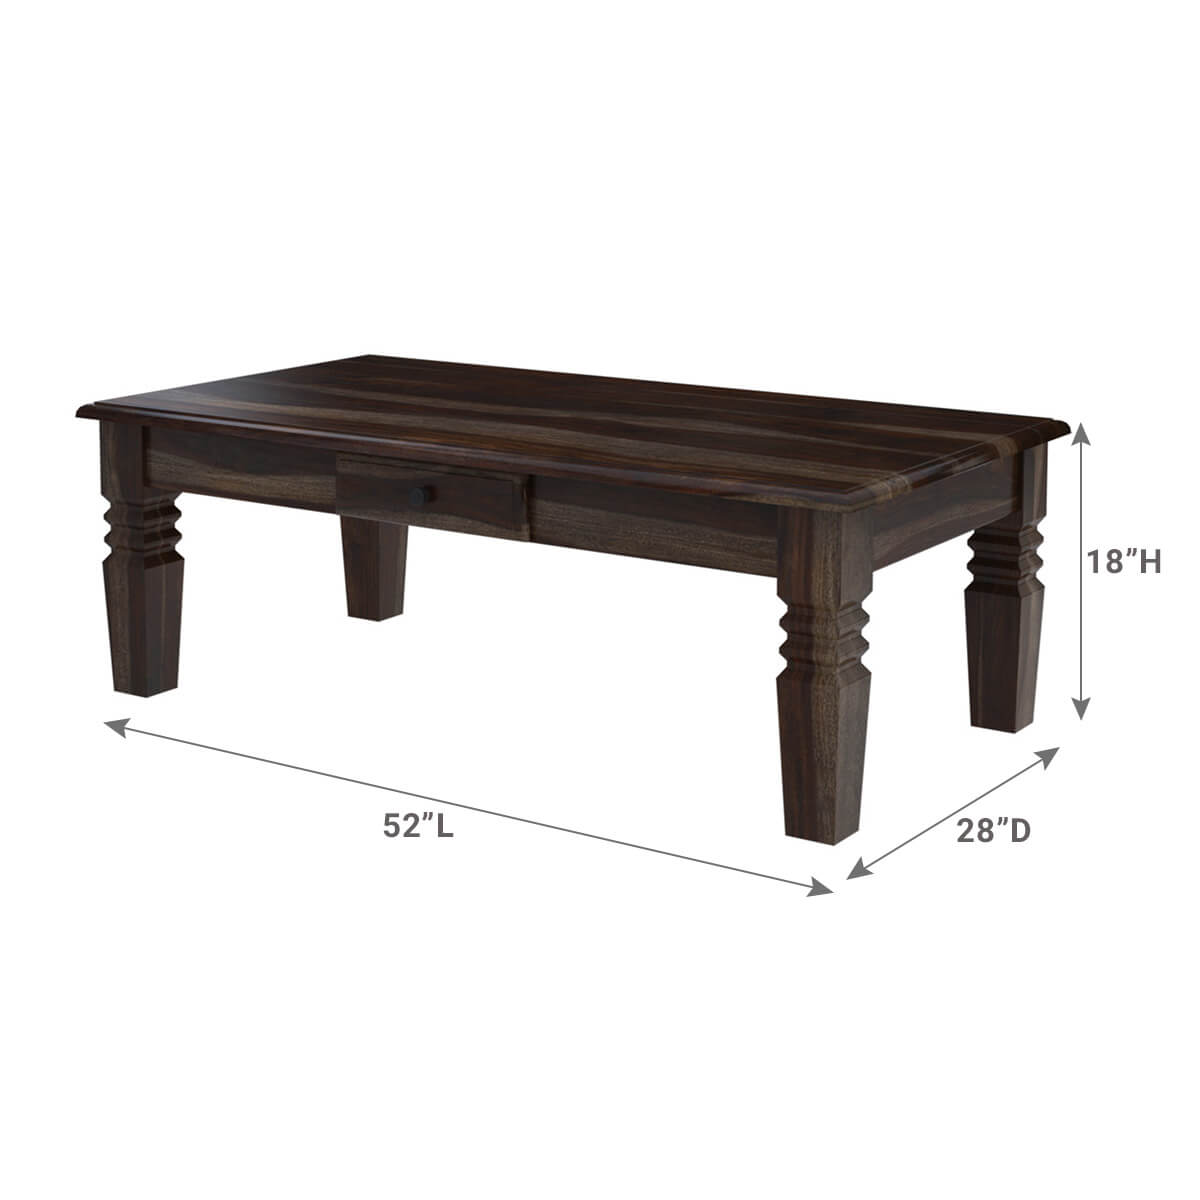 Black Coffee Table Modern Sierra Nevada Contemporary Black Coffee Table With Drawer